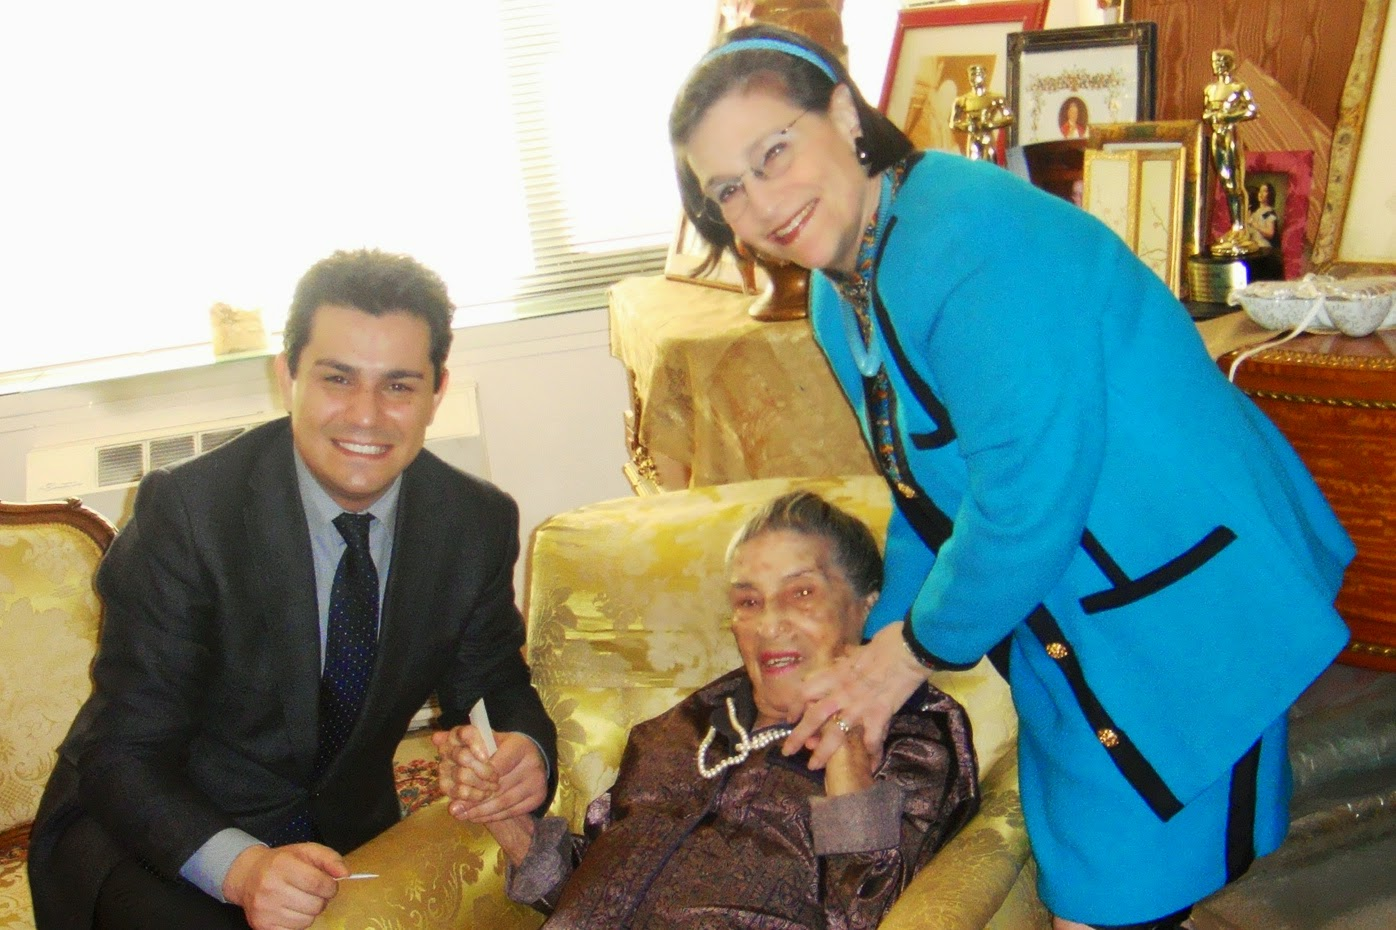 Karen and Saimir with the incomparable soprano LICIA ALBANESE as she celebrated her 100th birthday in 2013